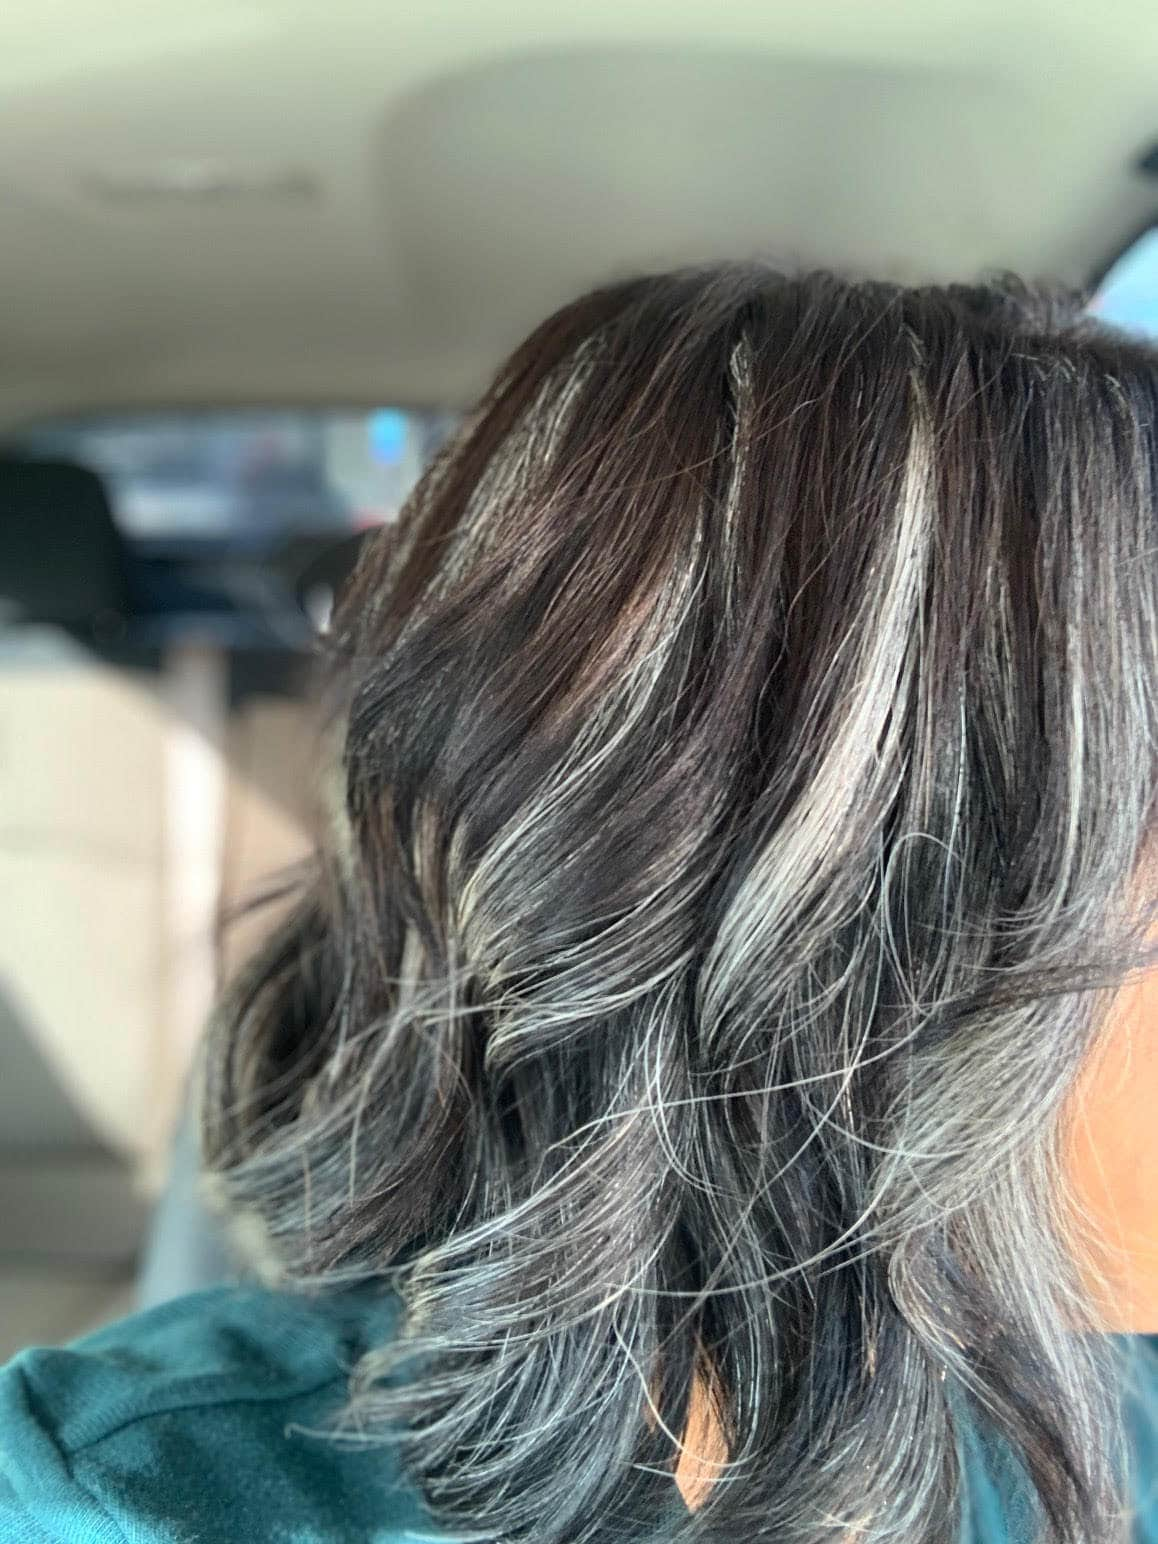 After months of using the dye strip technique, Diana's gray hair is taking over